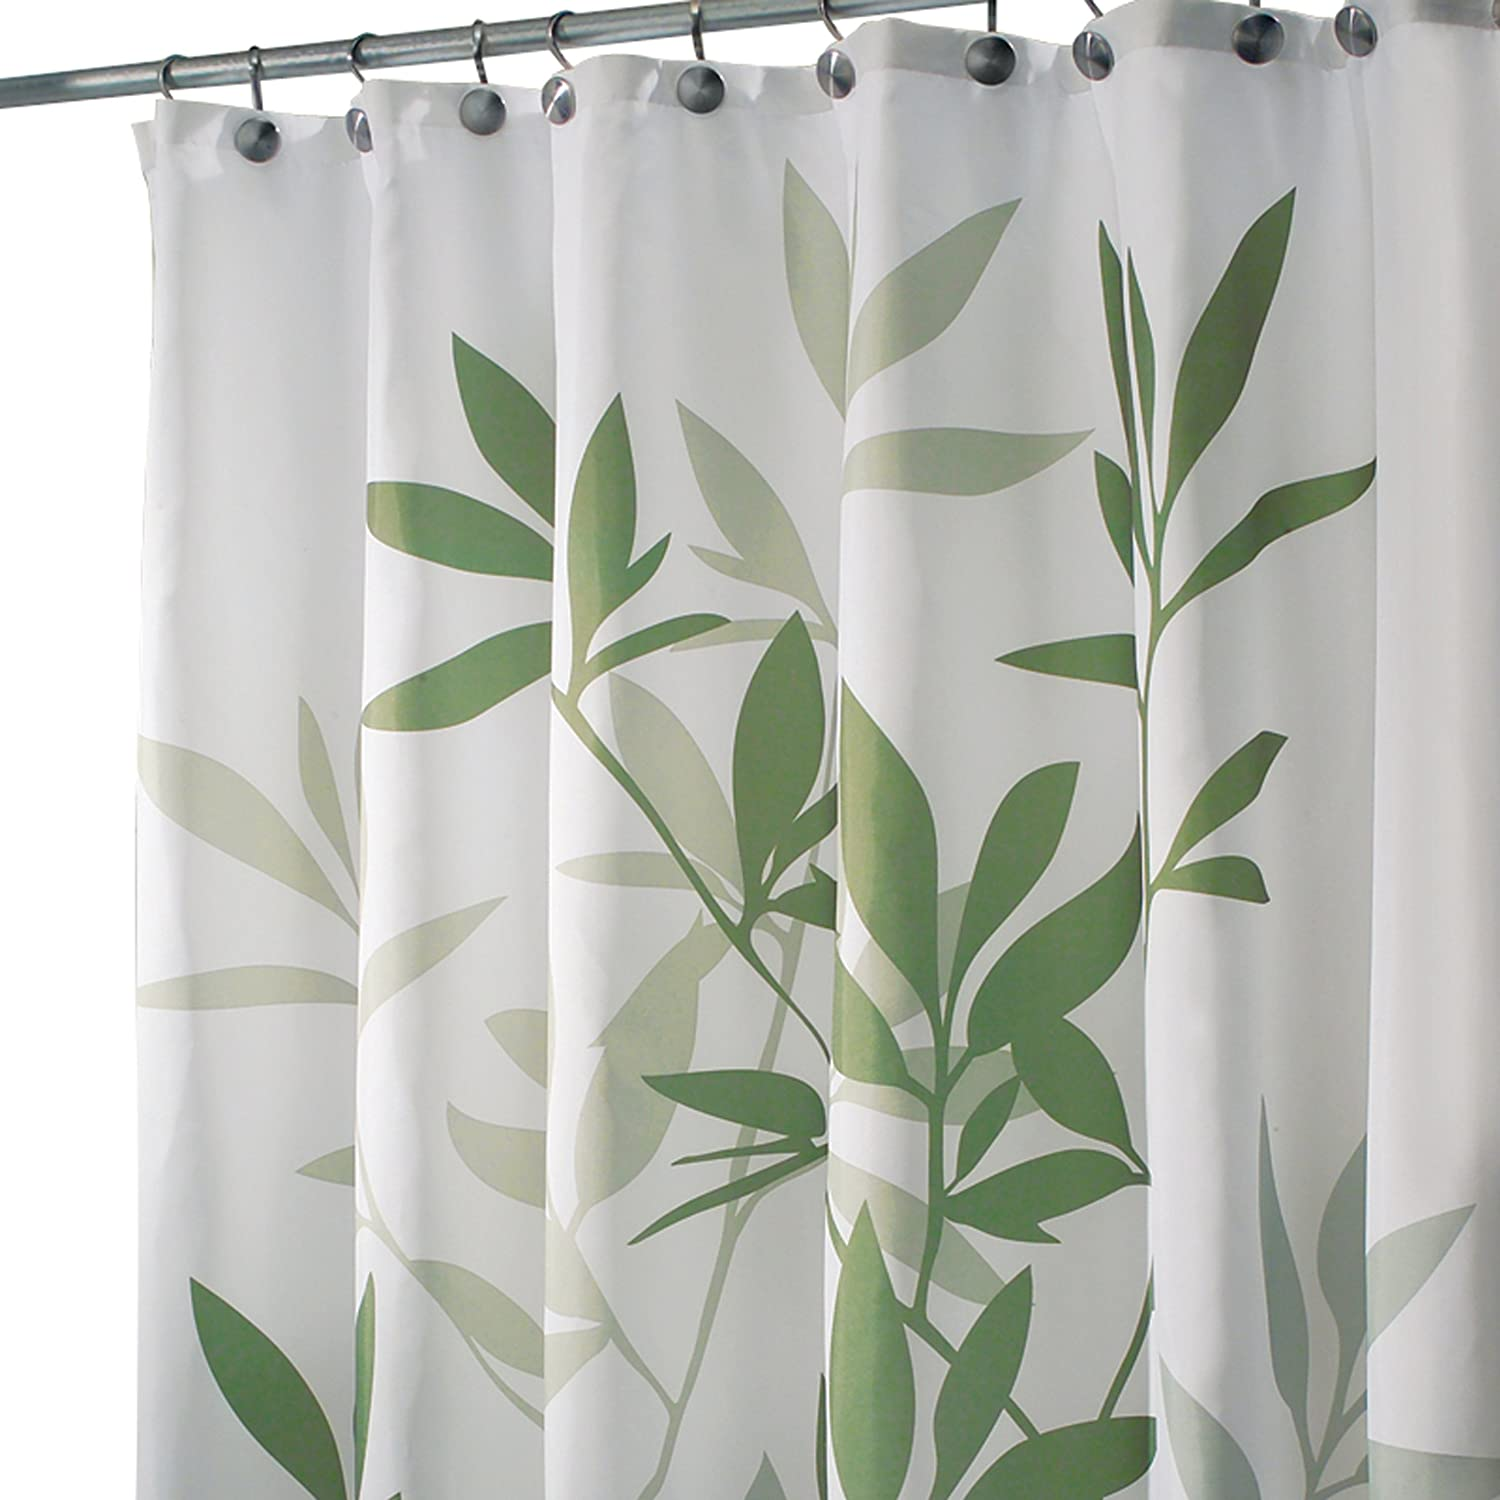 InterDesign Leaves Long Shower Curtain Green 72Inch by 84Inch  New Free Sh  eBay